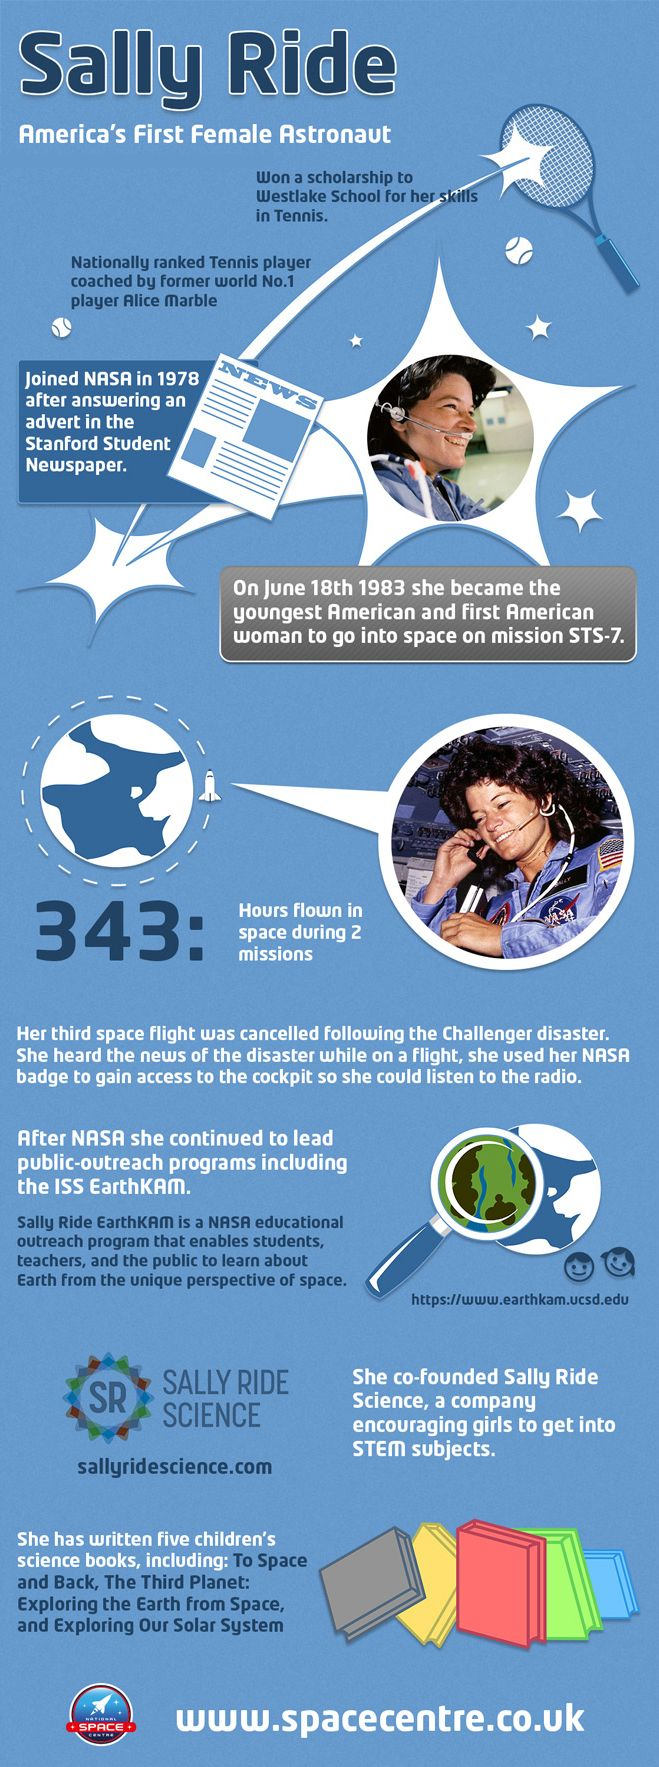 73 best images about Women in Space on Pinterest | Astronauts ...